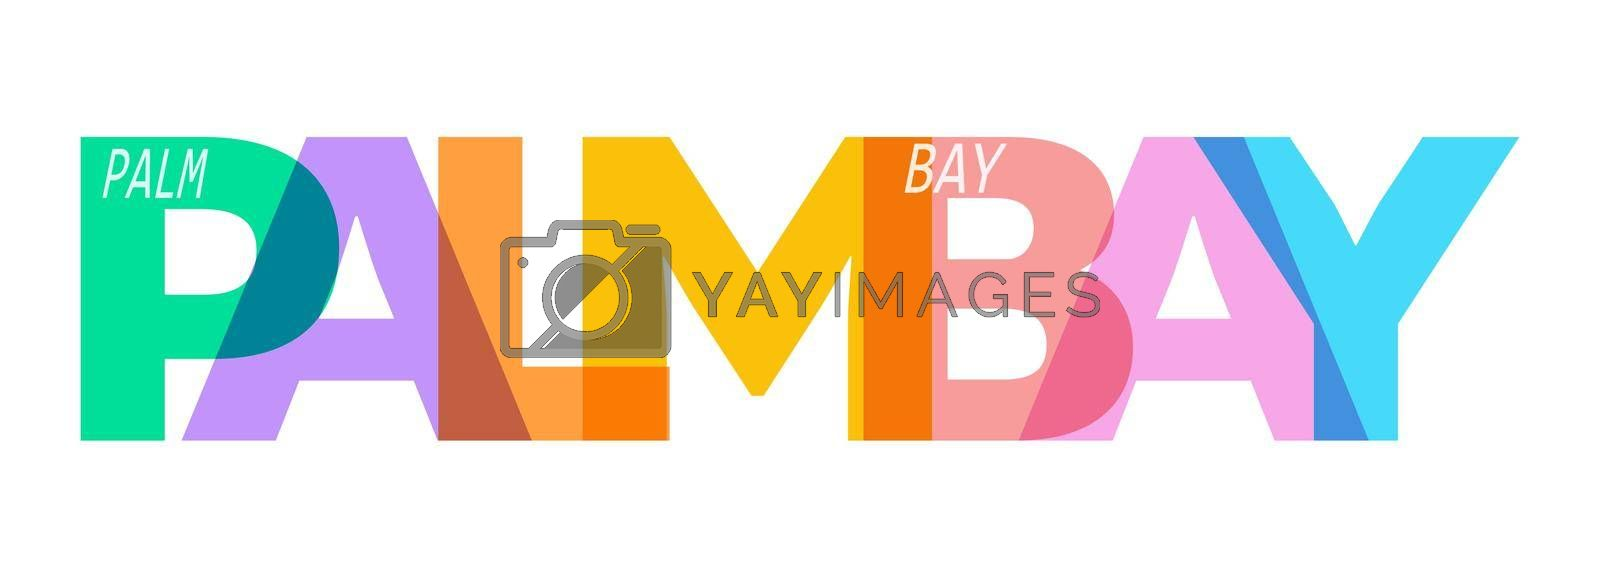 PALM BAY. The name of the city on a white background. Vector design template for poster, postcard, banner. Vector illustration.